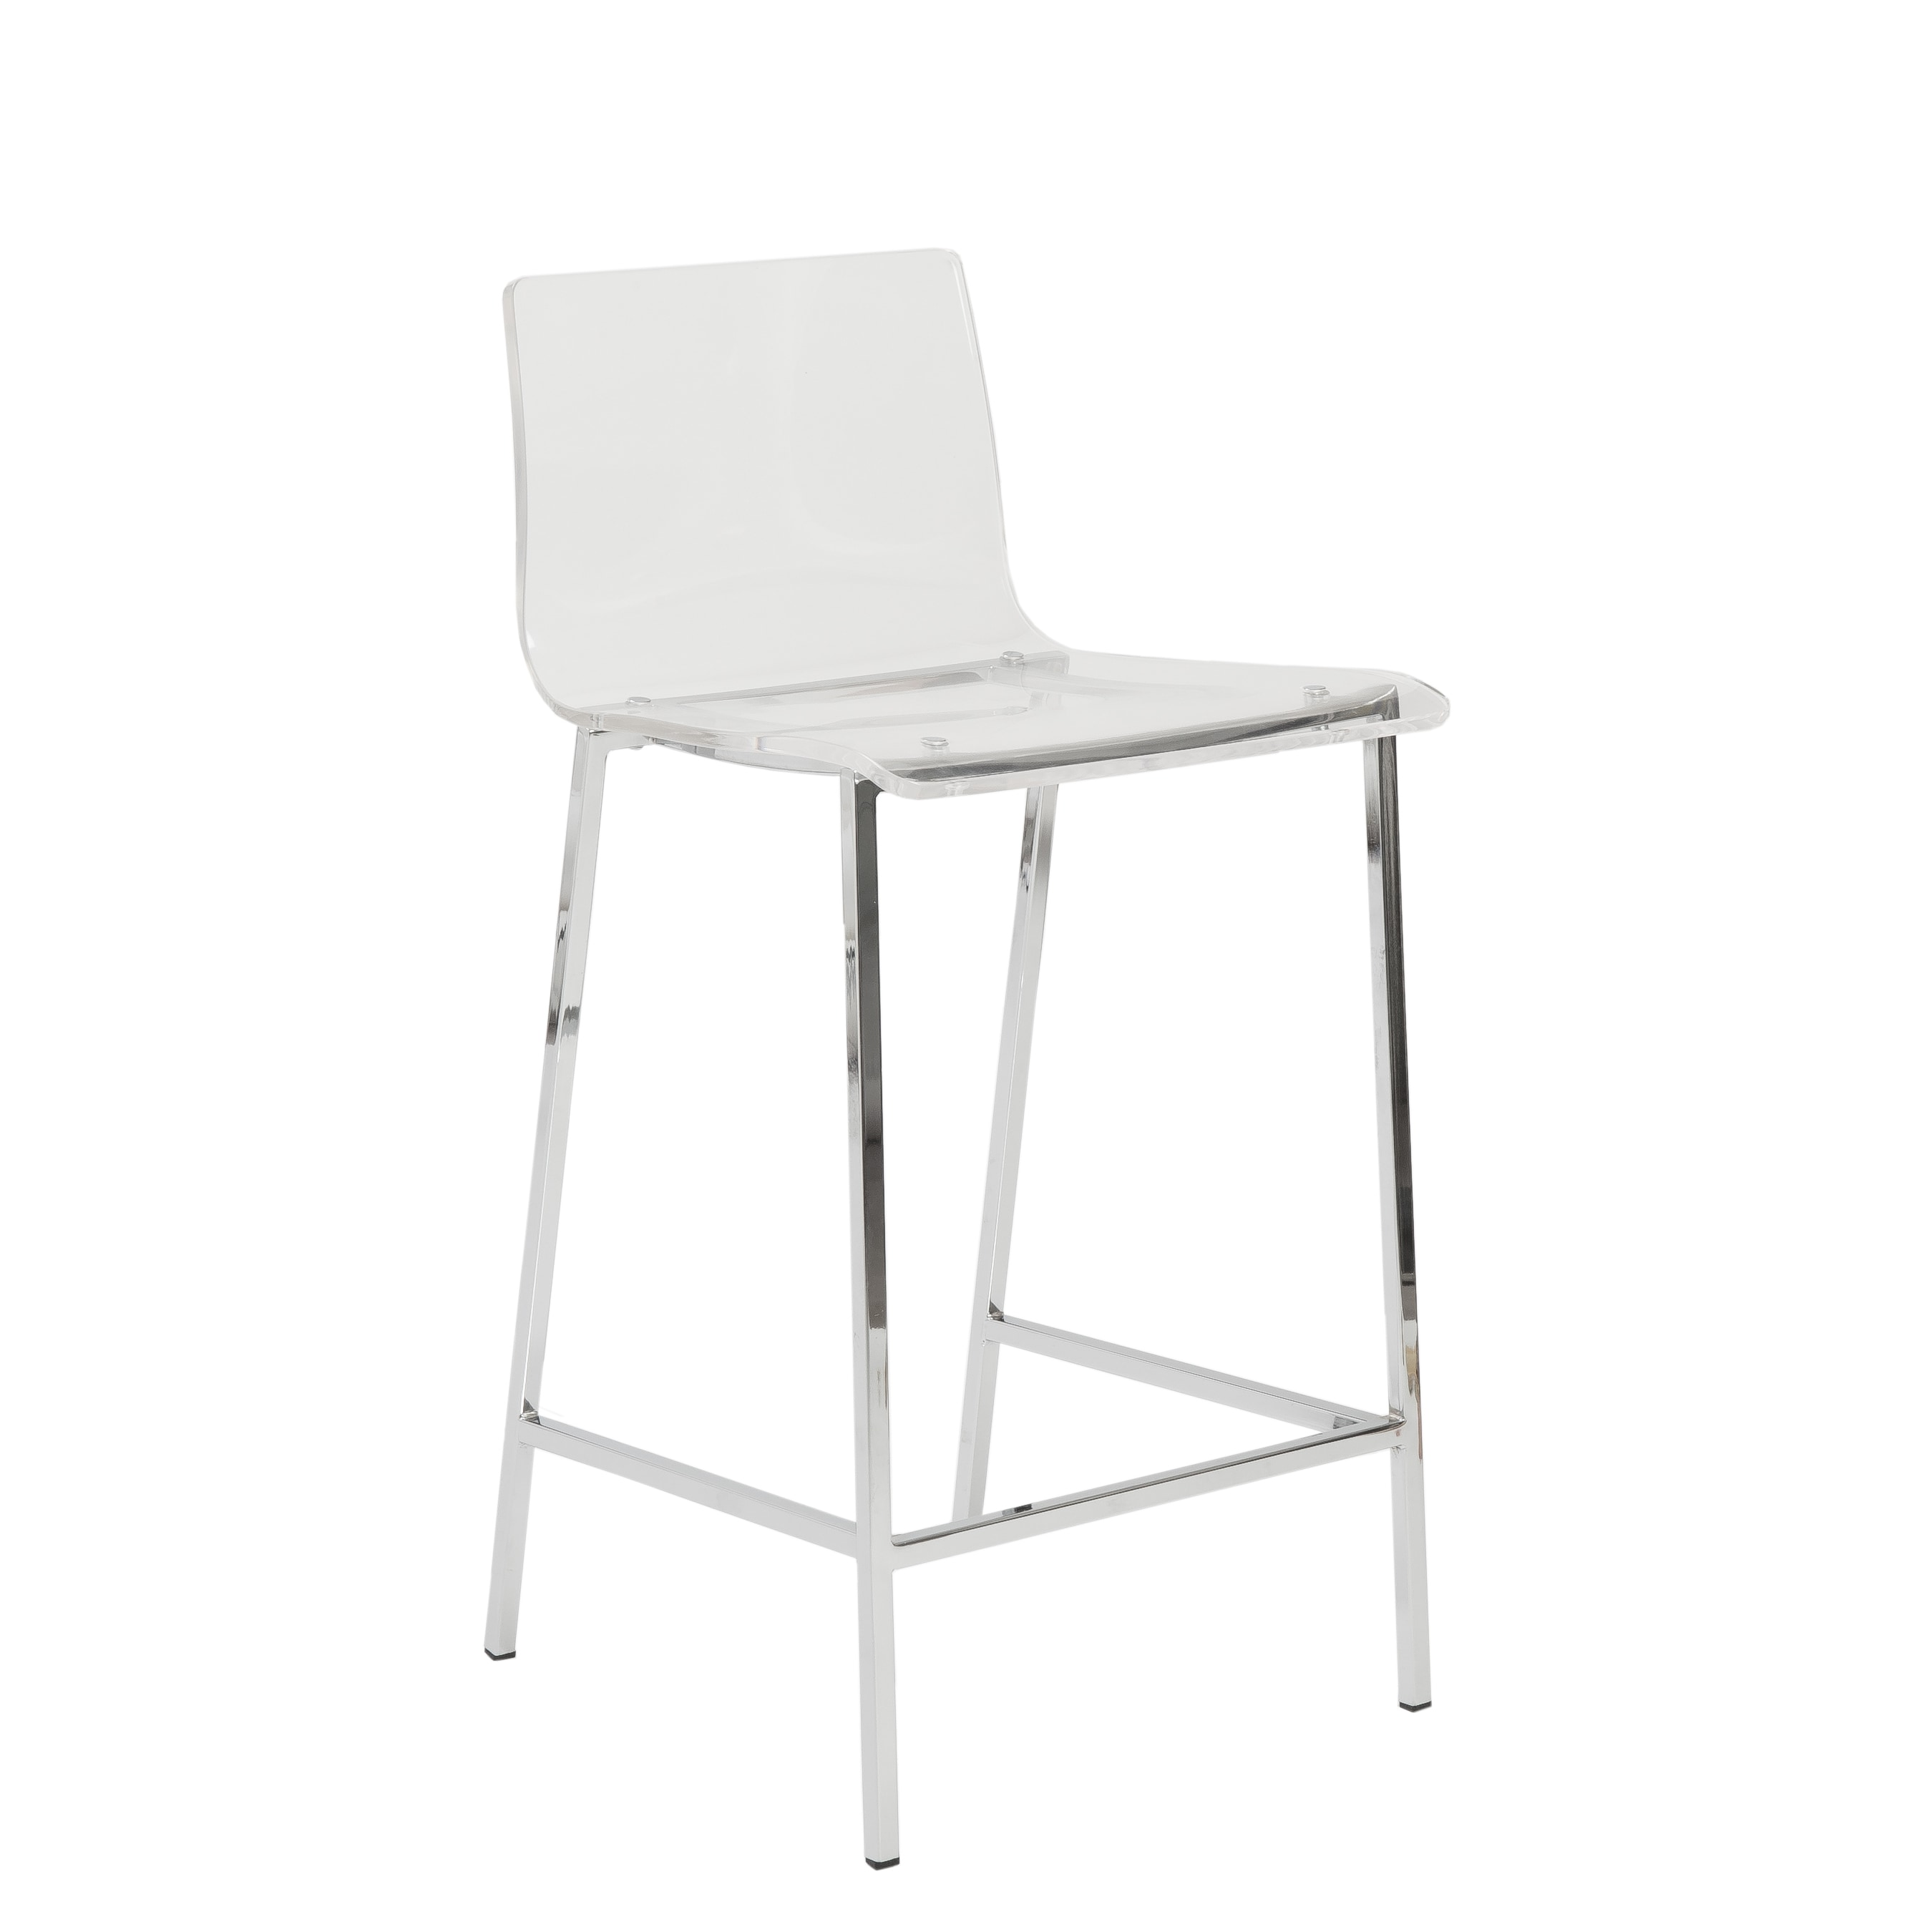 Excellent Chloe 26 Inch Clear Chrome Counter Stool Set Of 2 Evergreenethics Interior Chair Design Evergreenethicsorg